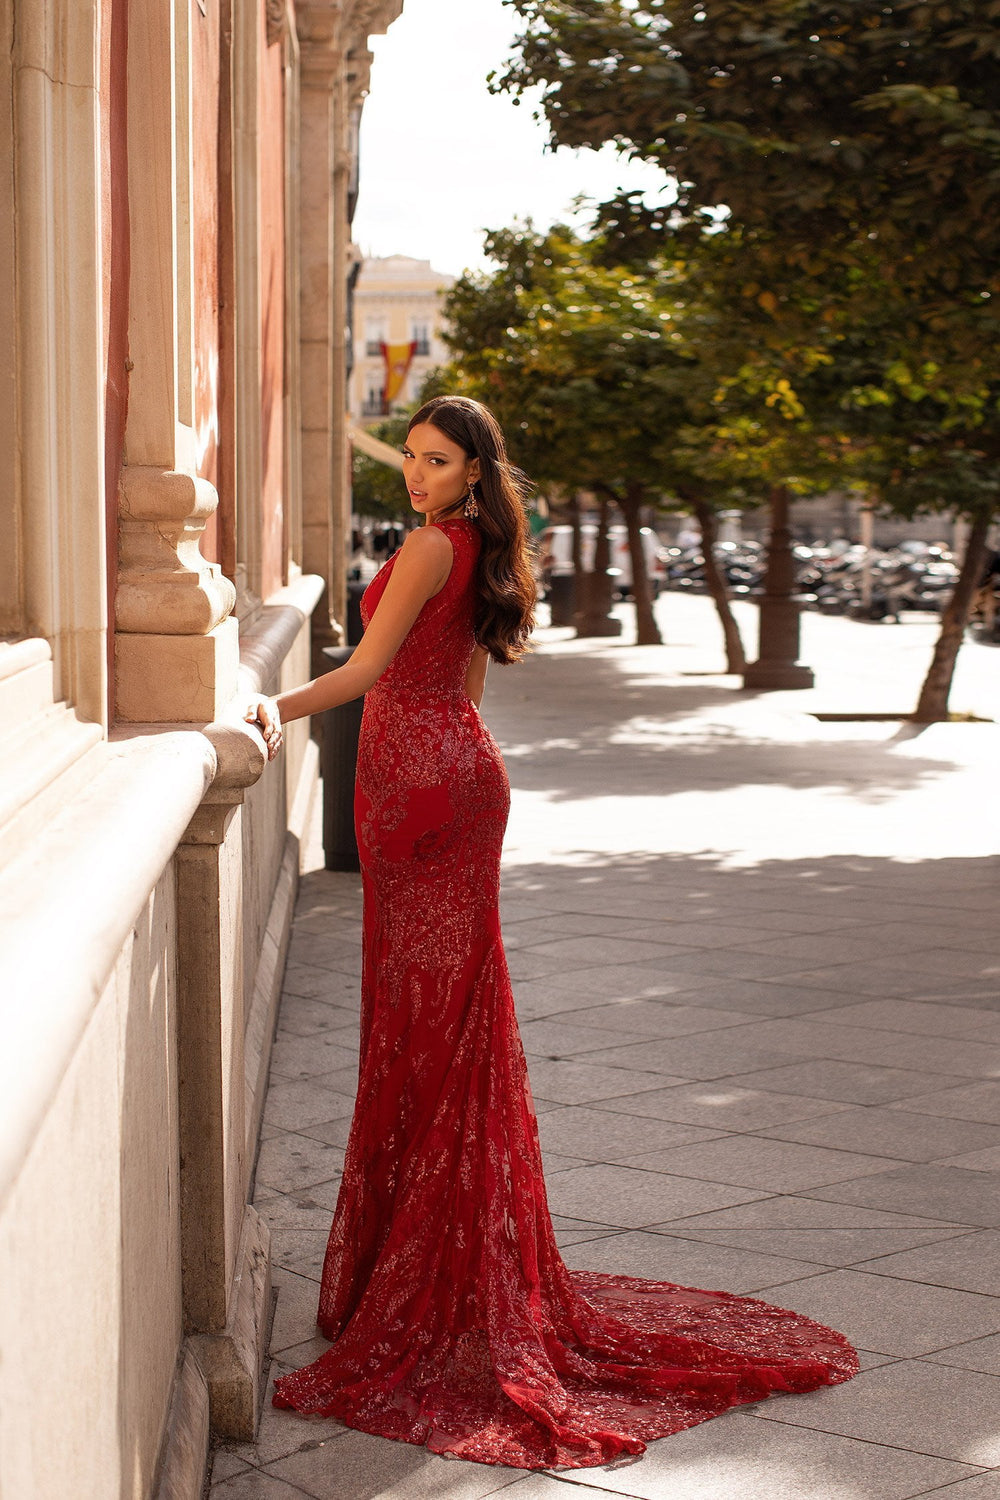 Coletea - Deep Red Patterned Sequin Mermaid Gown with Plunge Neck